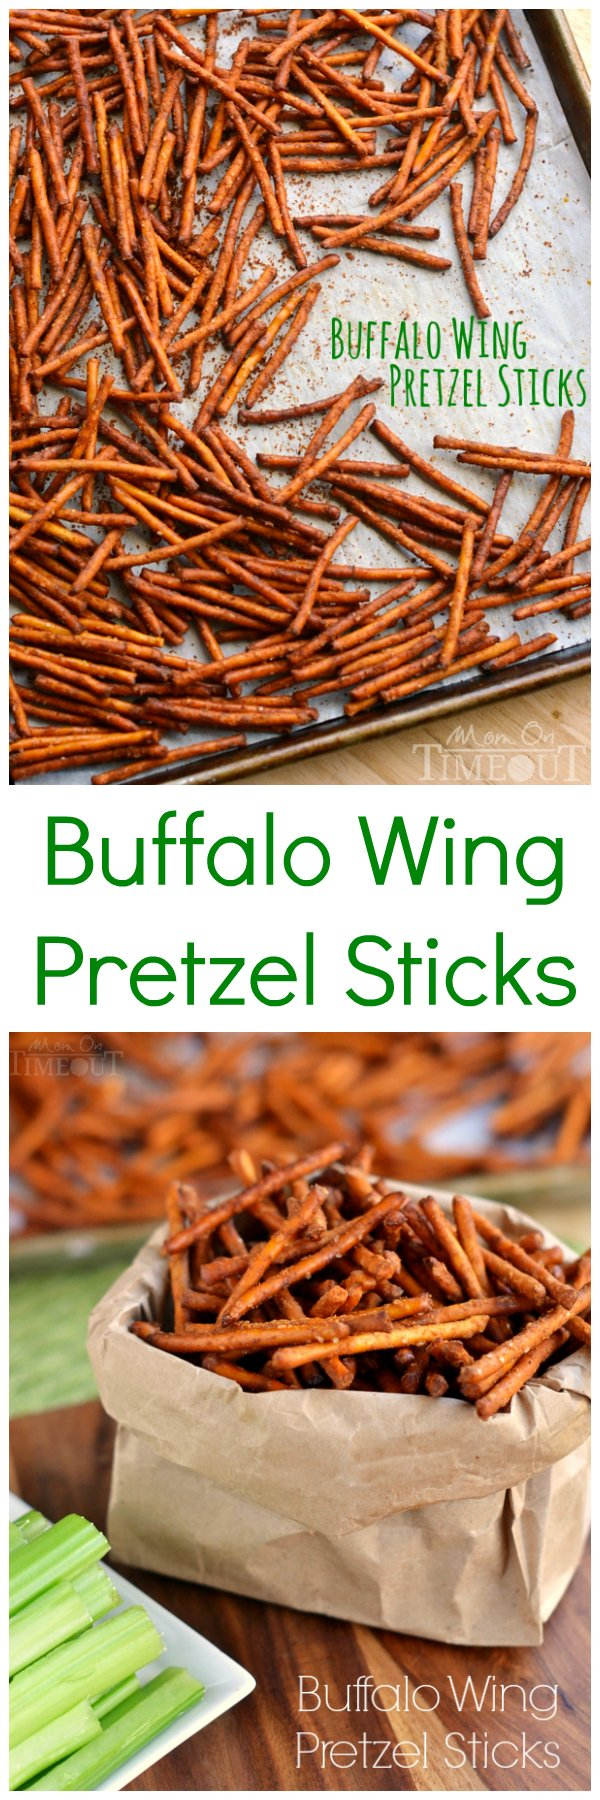 These Buffalo Wing Pretzel Sticks are the perfect snack to enjoy while watching the game!   MomOnTimeout.com   #recipe #appetizer #football #snack